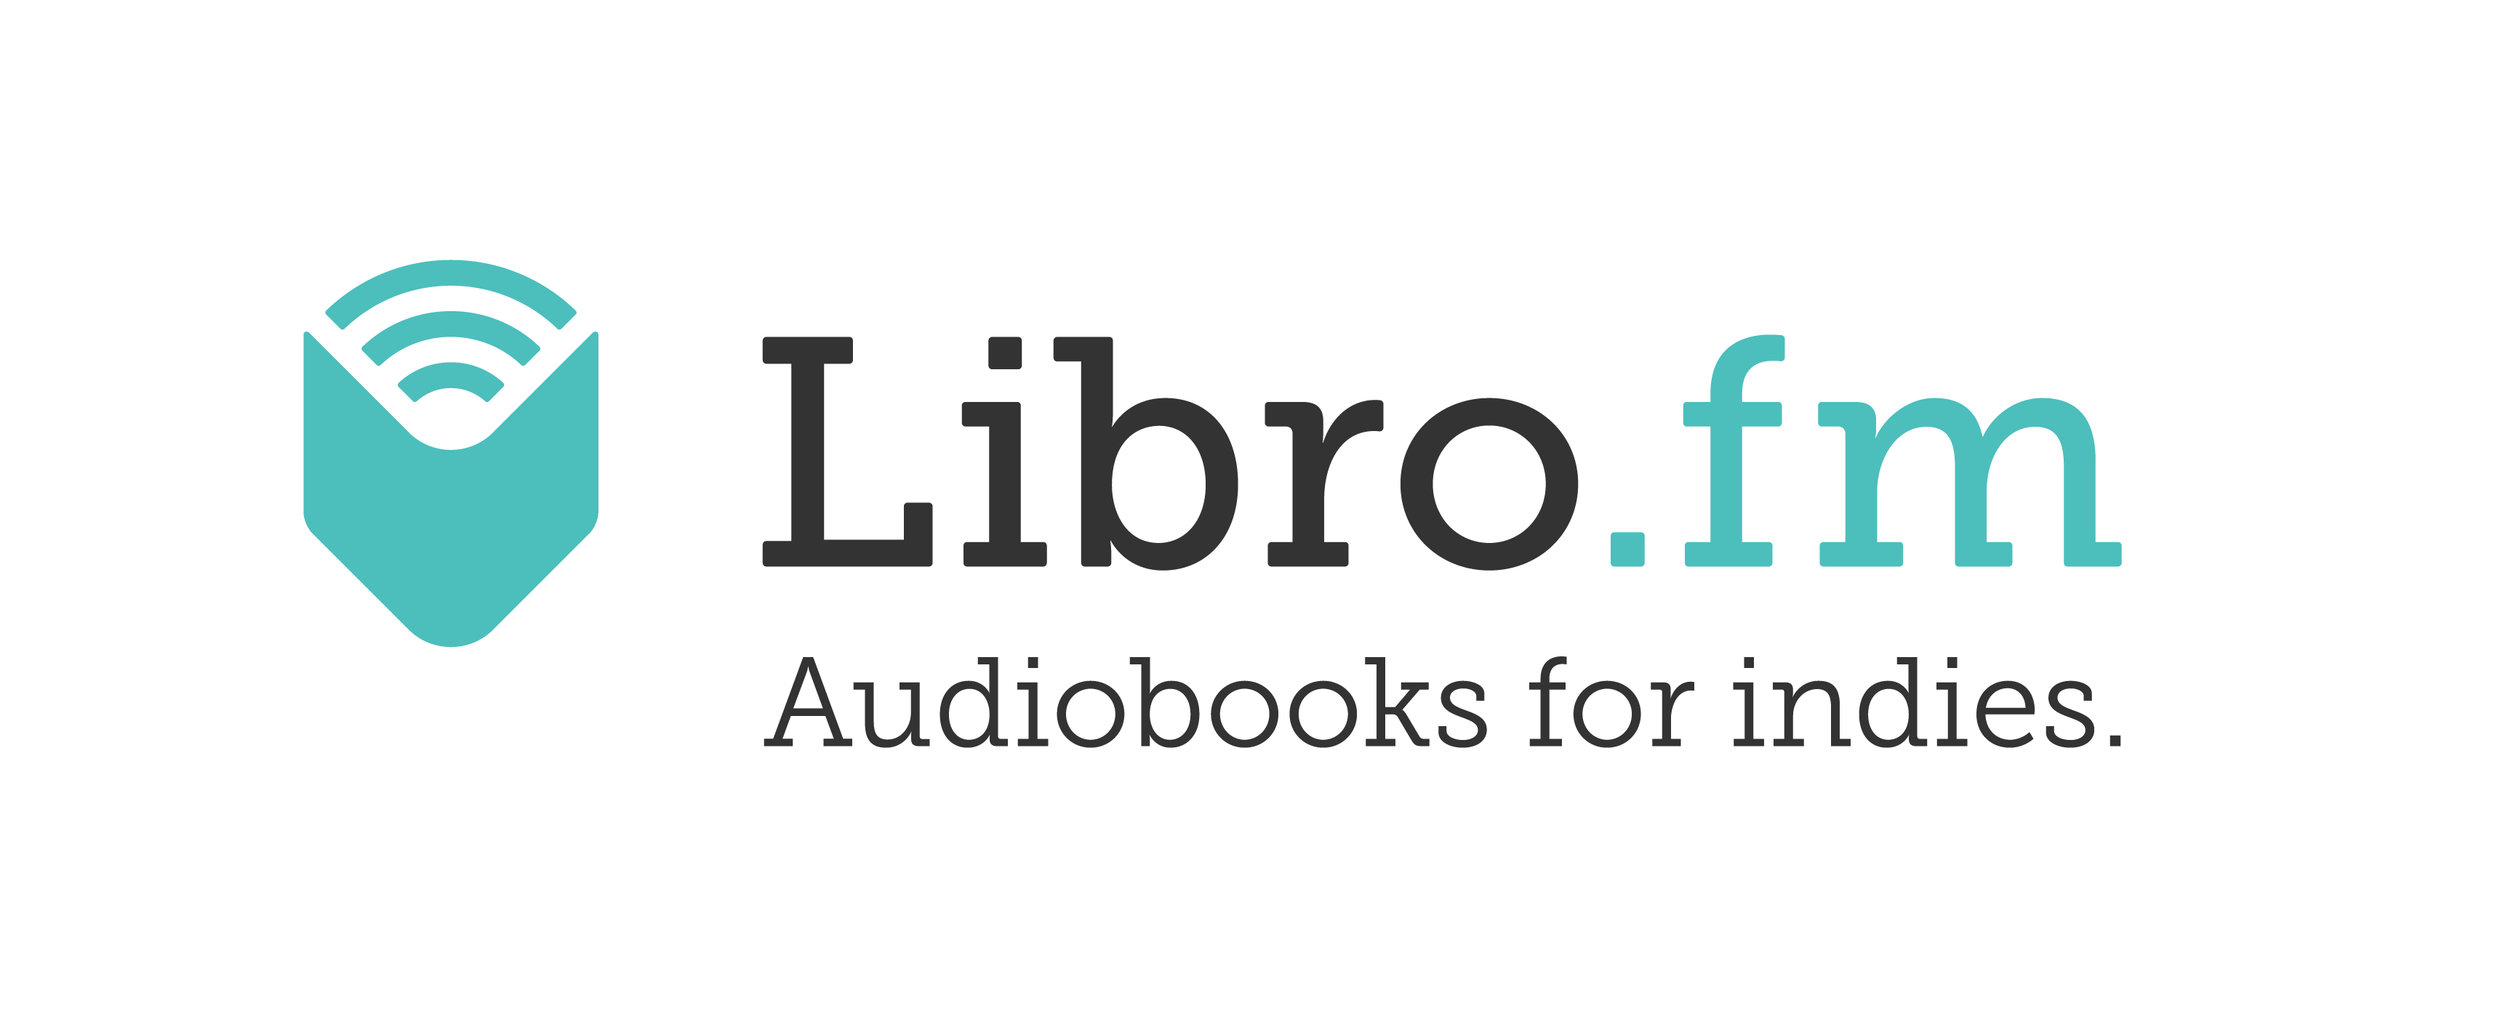 If you have an ability to pay for audiobooks and will most likely be looking for relatively popular titles, this is the way to go.